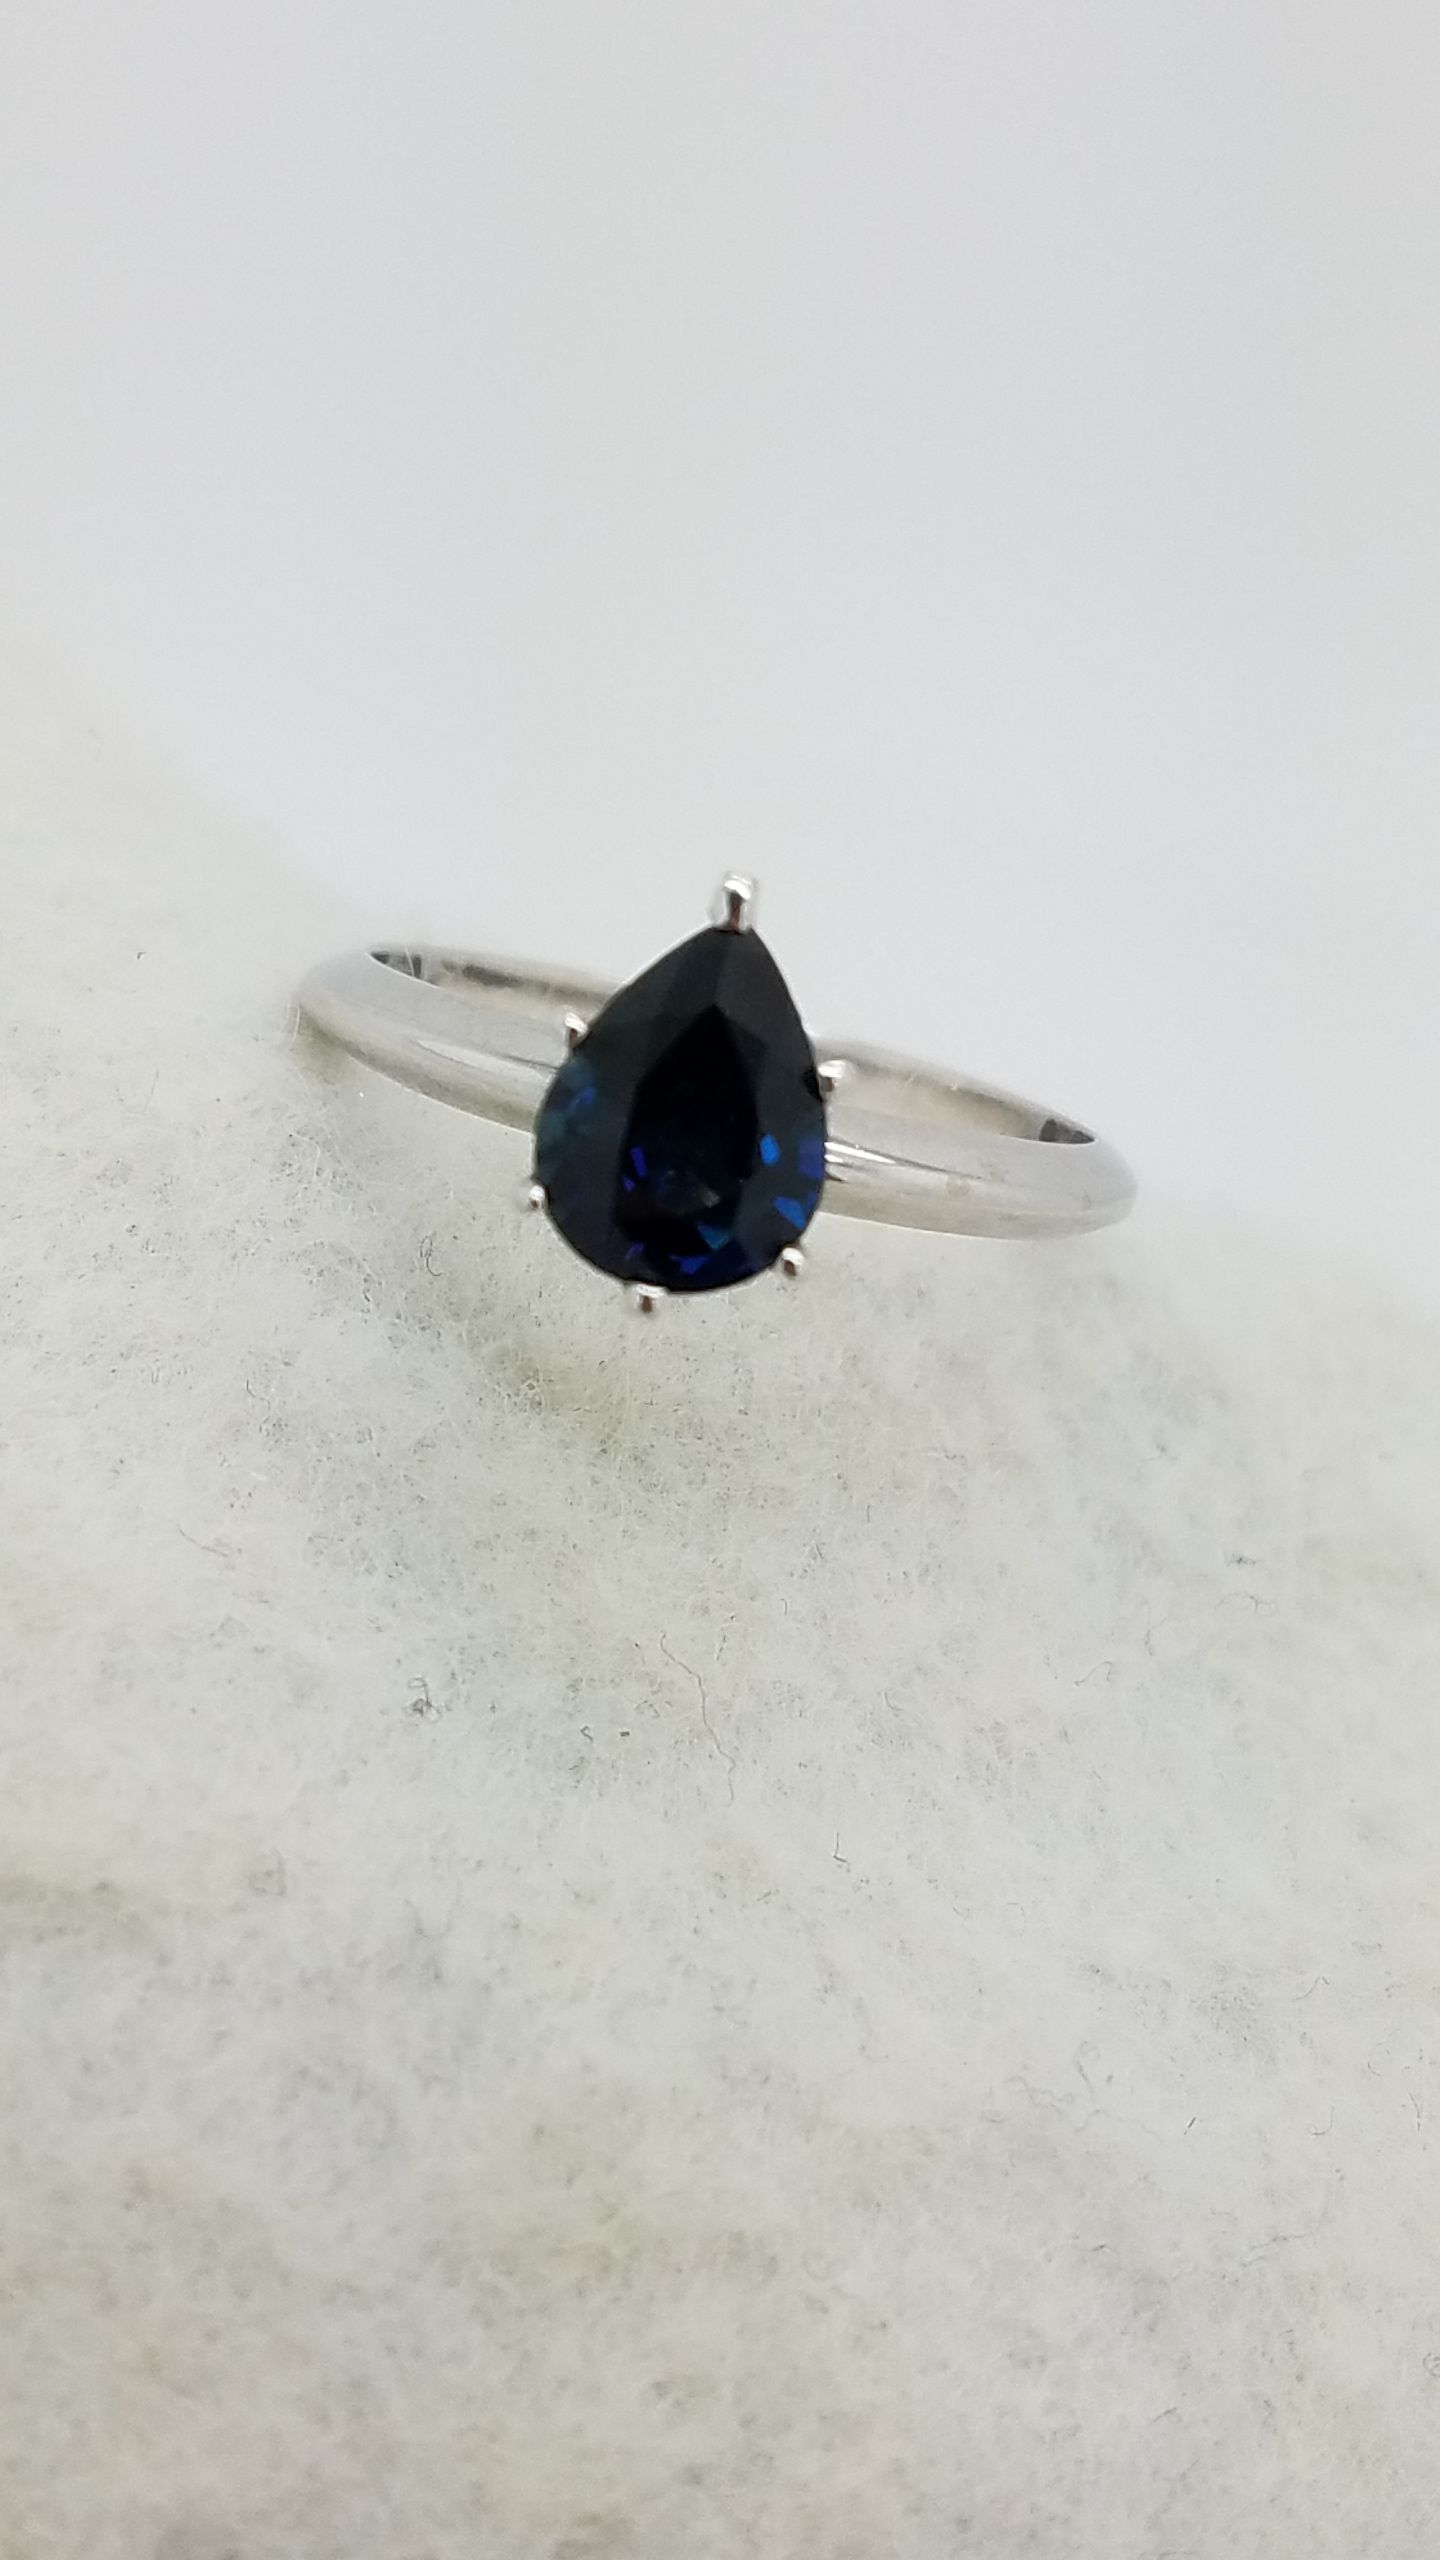 emitter set sapphire engagement round bezel floor ring shop metal tapered gold stone blue in white ctw render light aqua solitaire